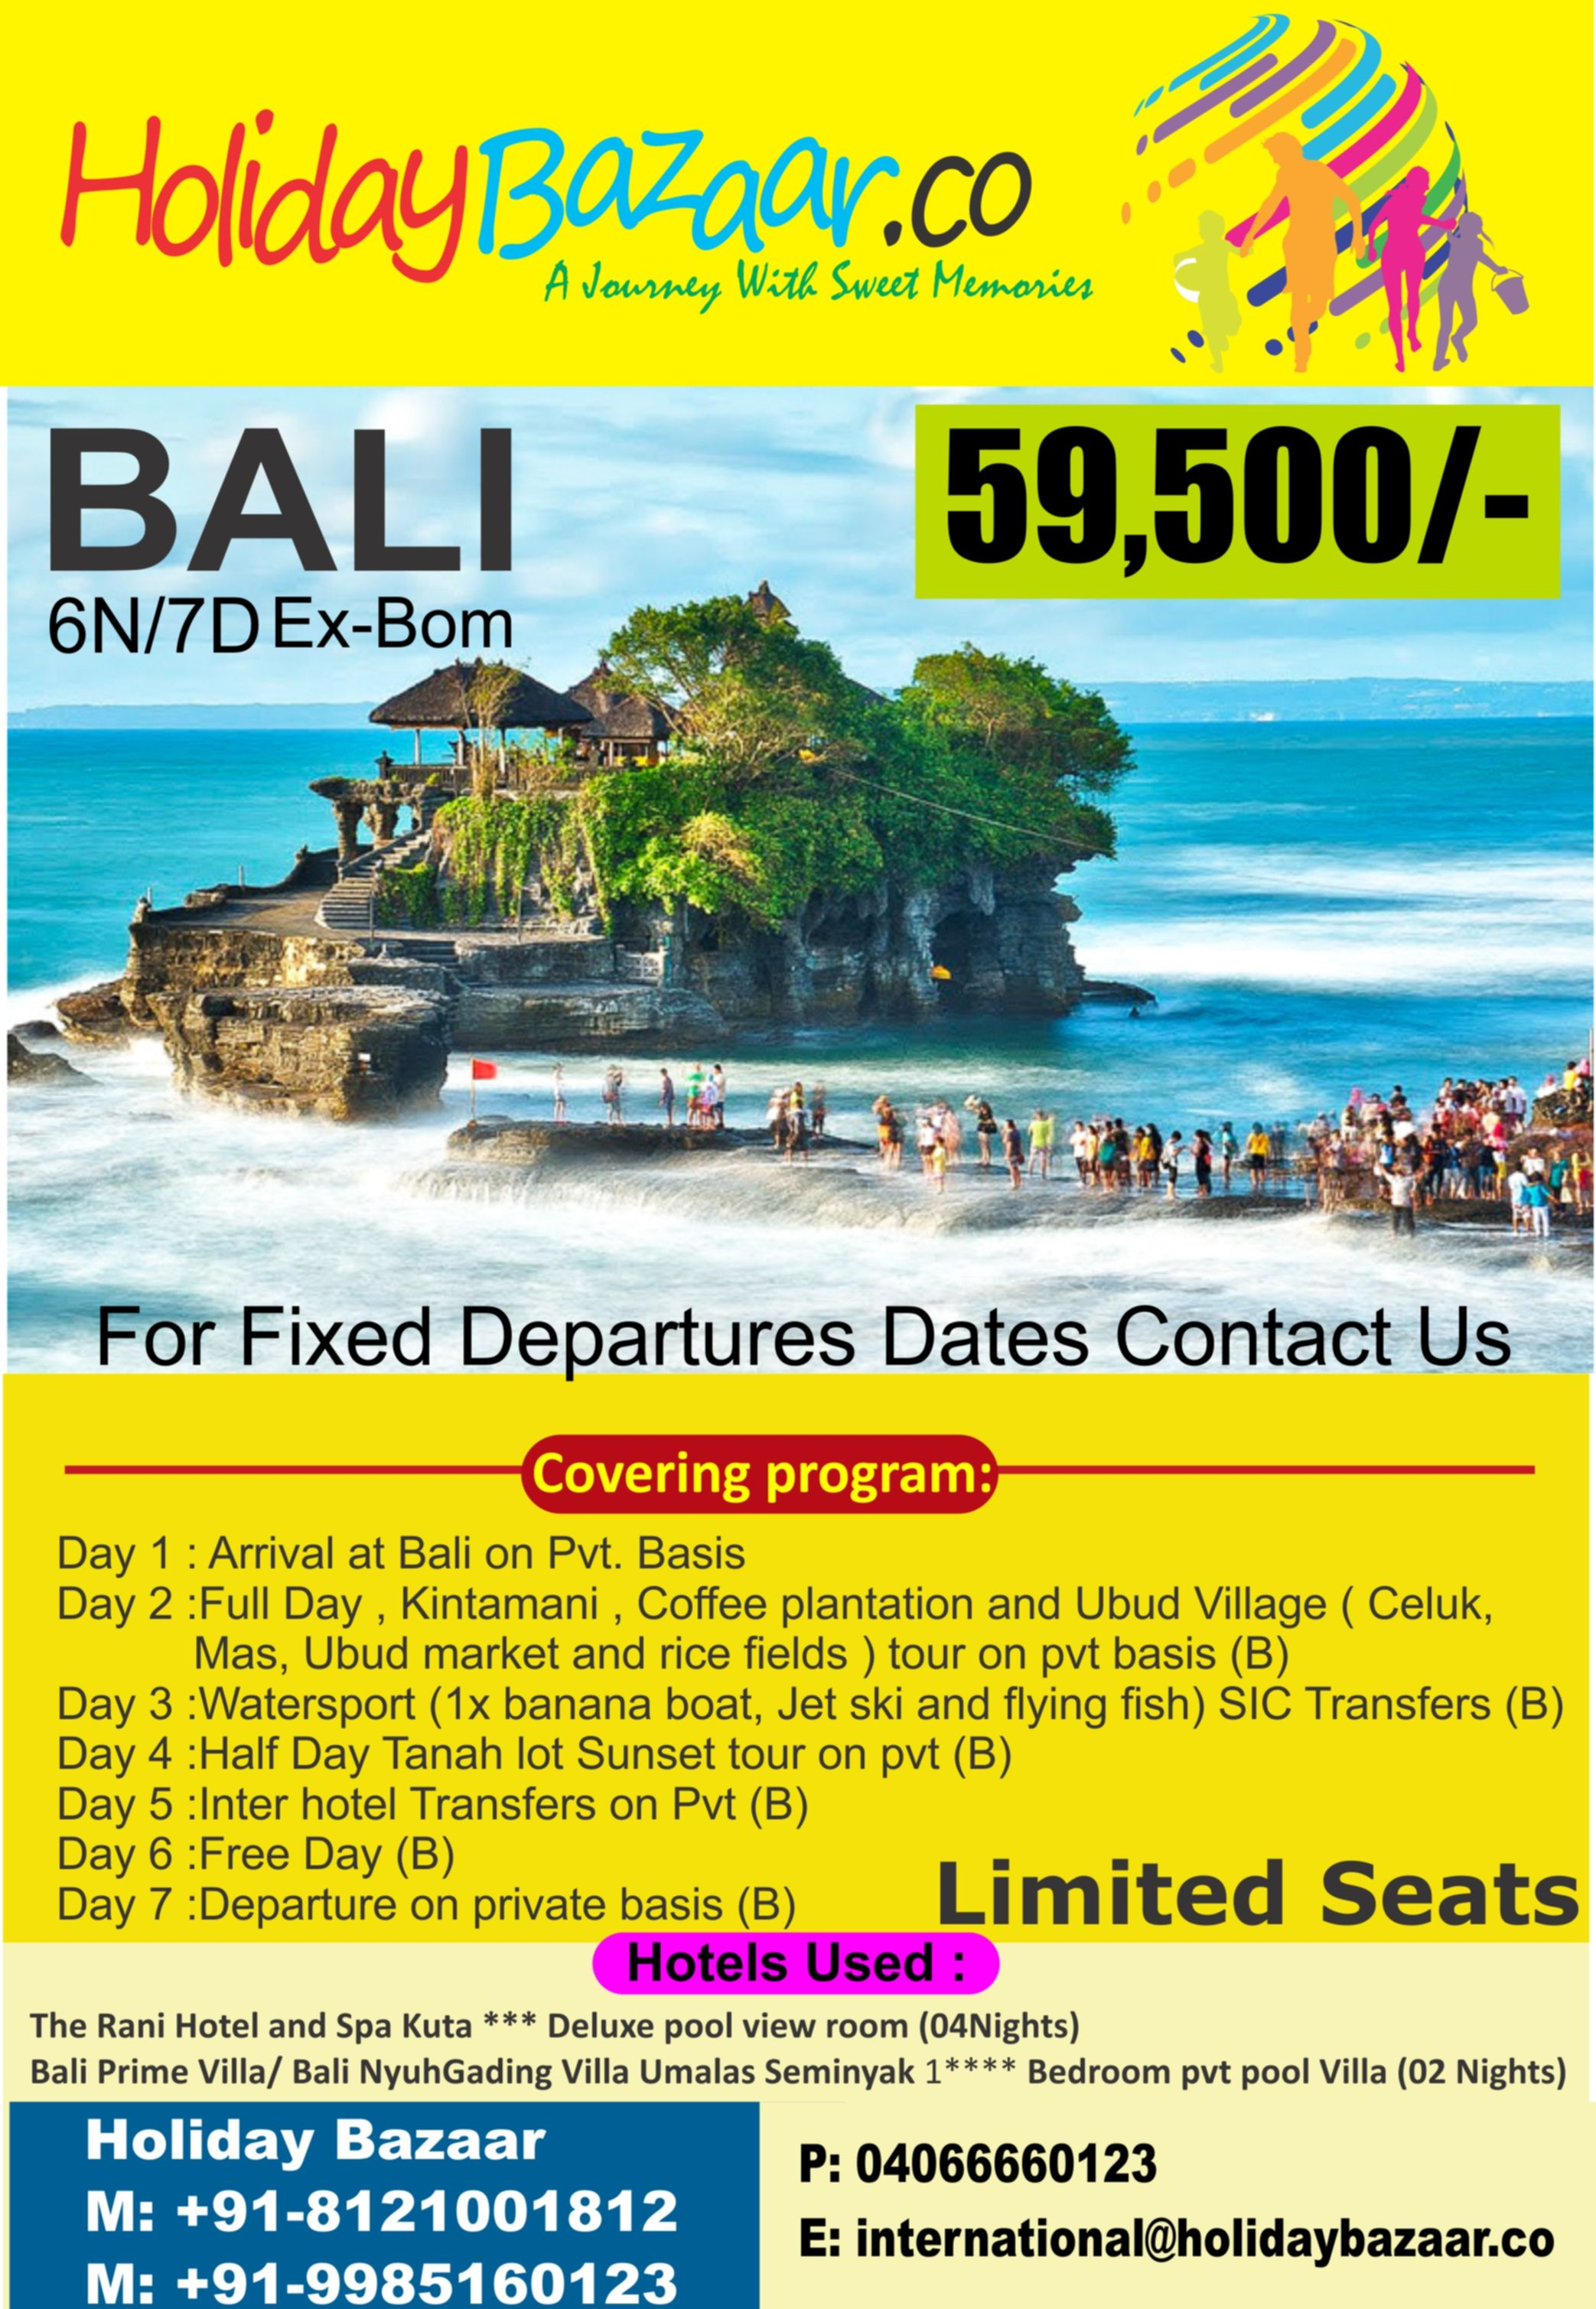 Enjoy Your Tour With Beautiful Bali Package From Holiday Bazaar Book Your Package Now For Best Prices And Ser Bali Packages Travel Package Deals Tour Packages